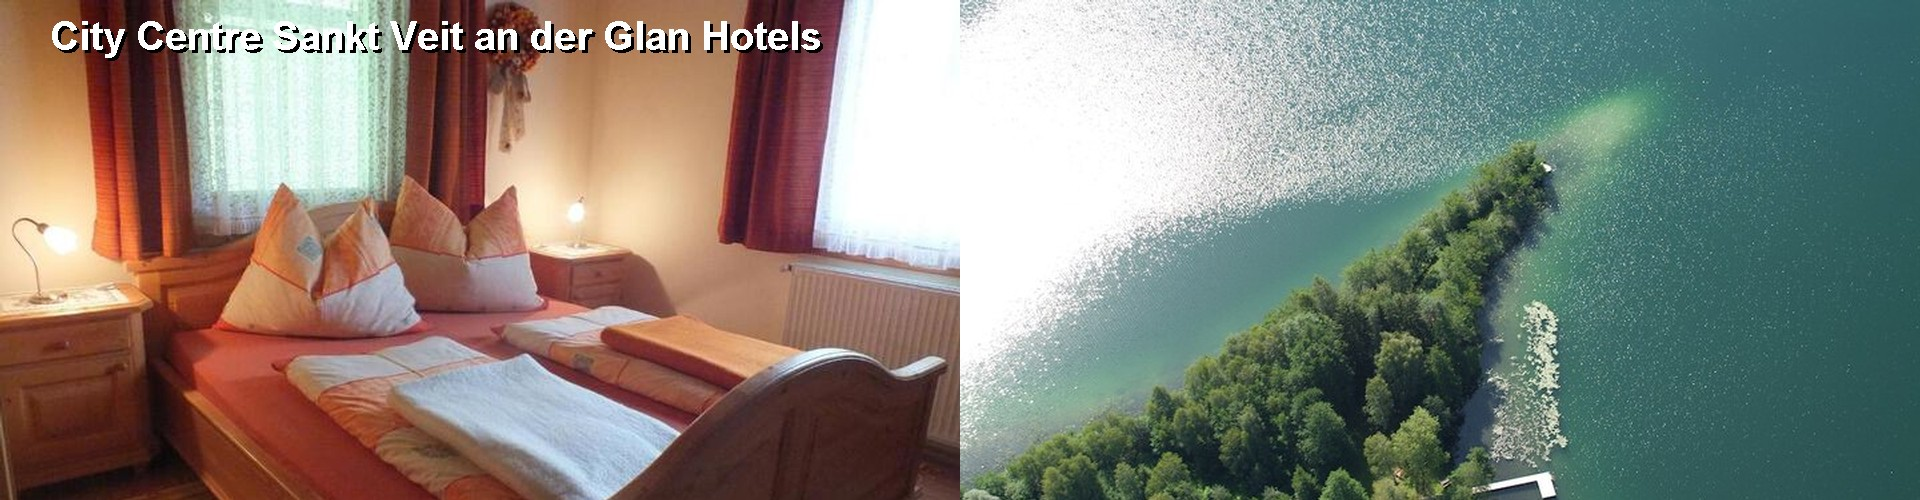 4 Best Hotels near City Centre Sankt Veit an der Glan